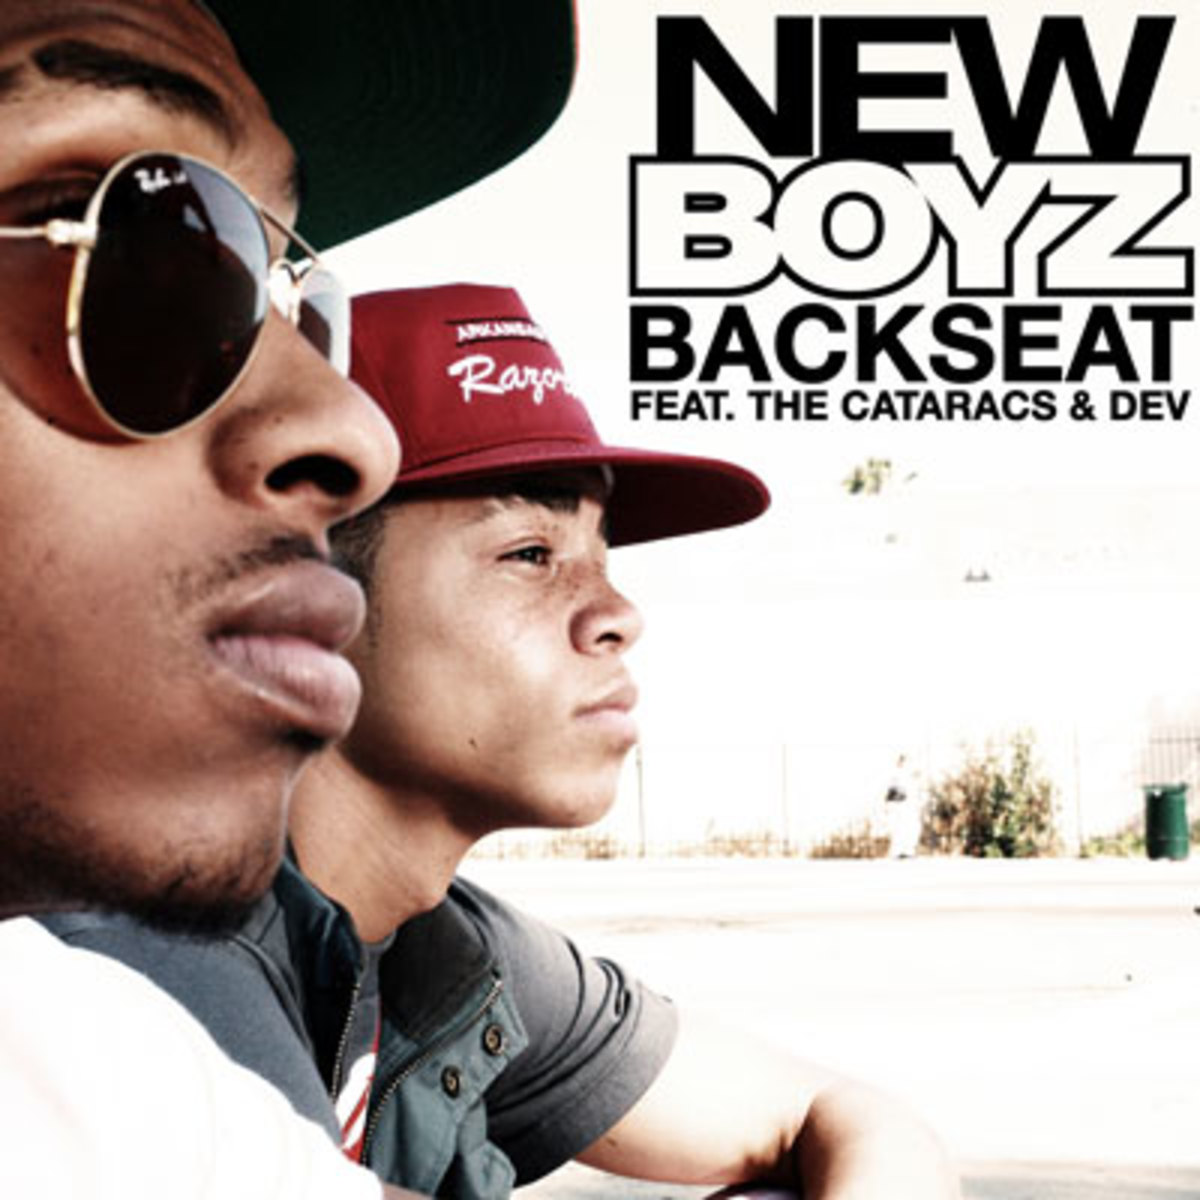 newboyz-backseat.jpg